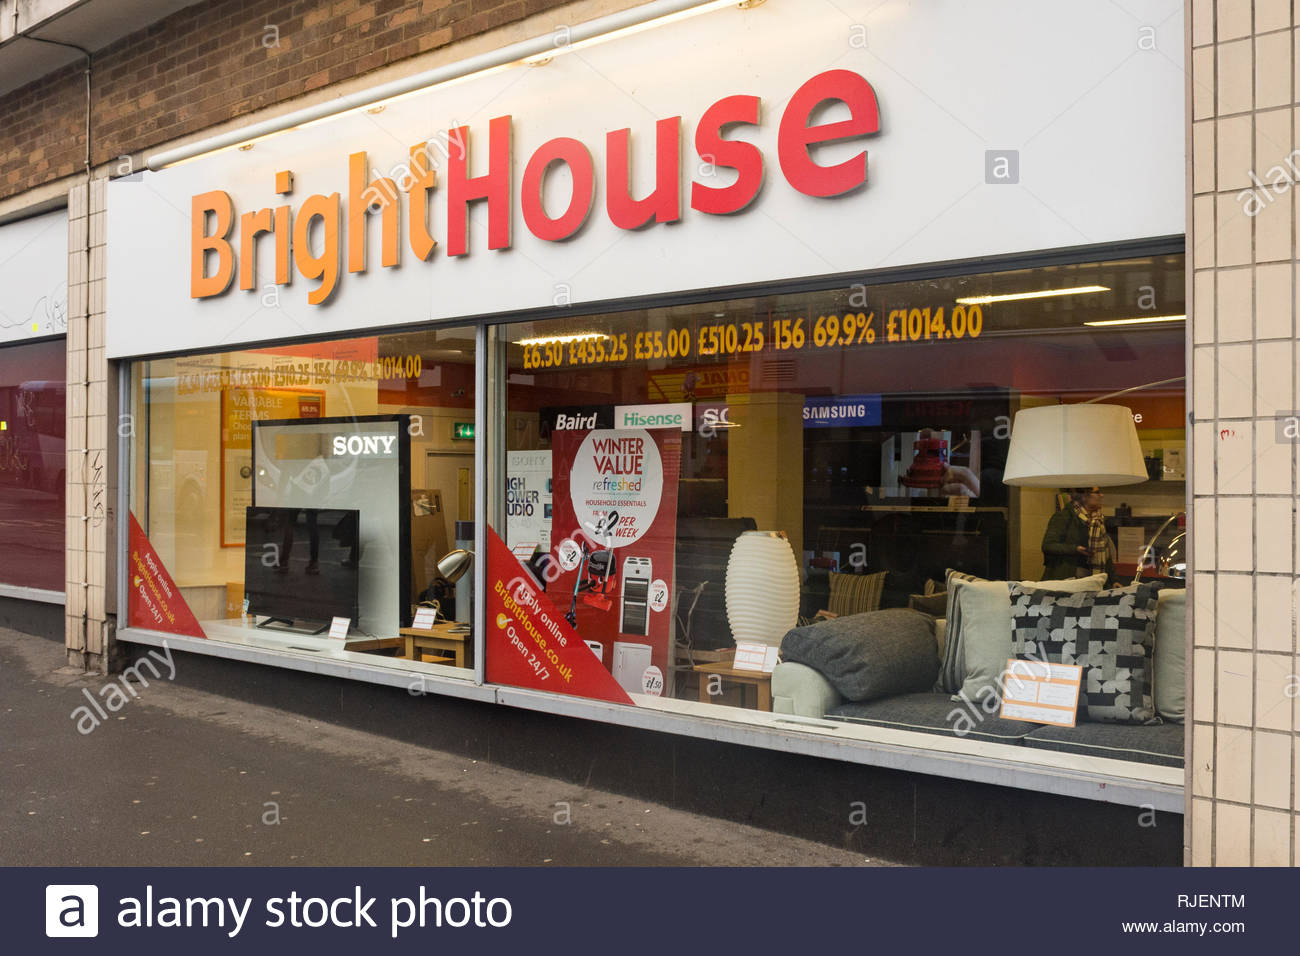 Brighthouse Stock Photos & Brighthouse Stock Images - Alamy